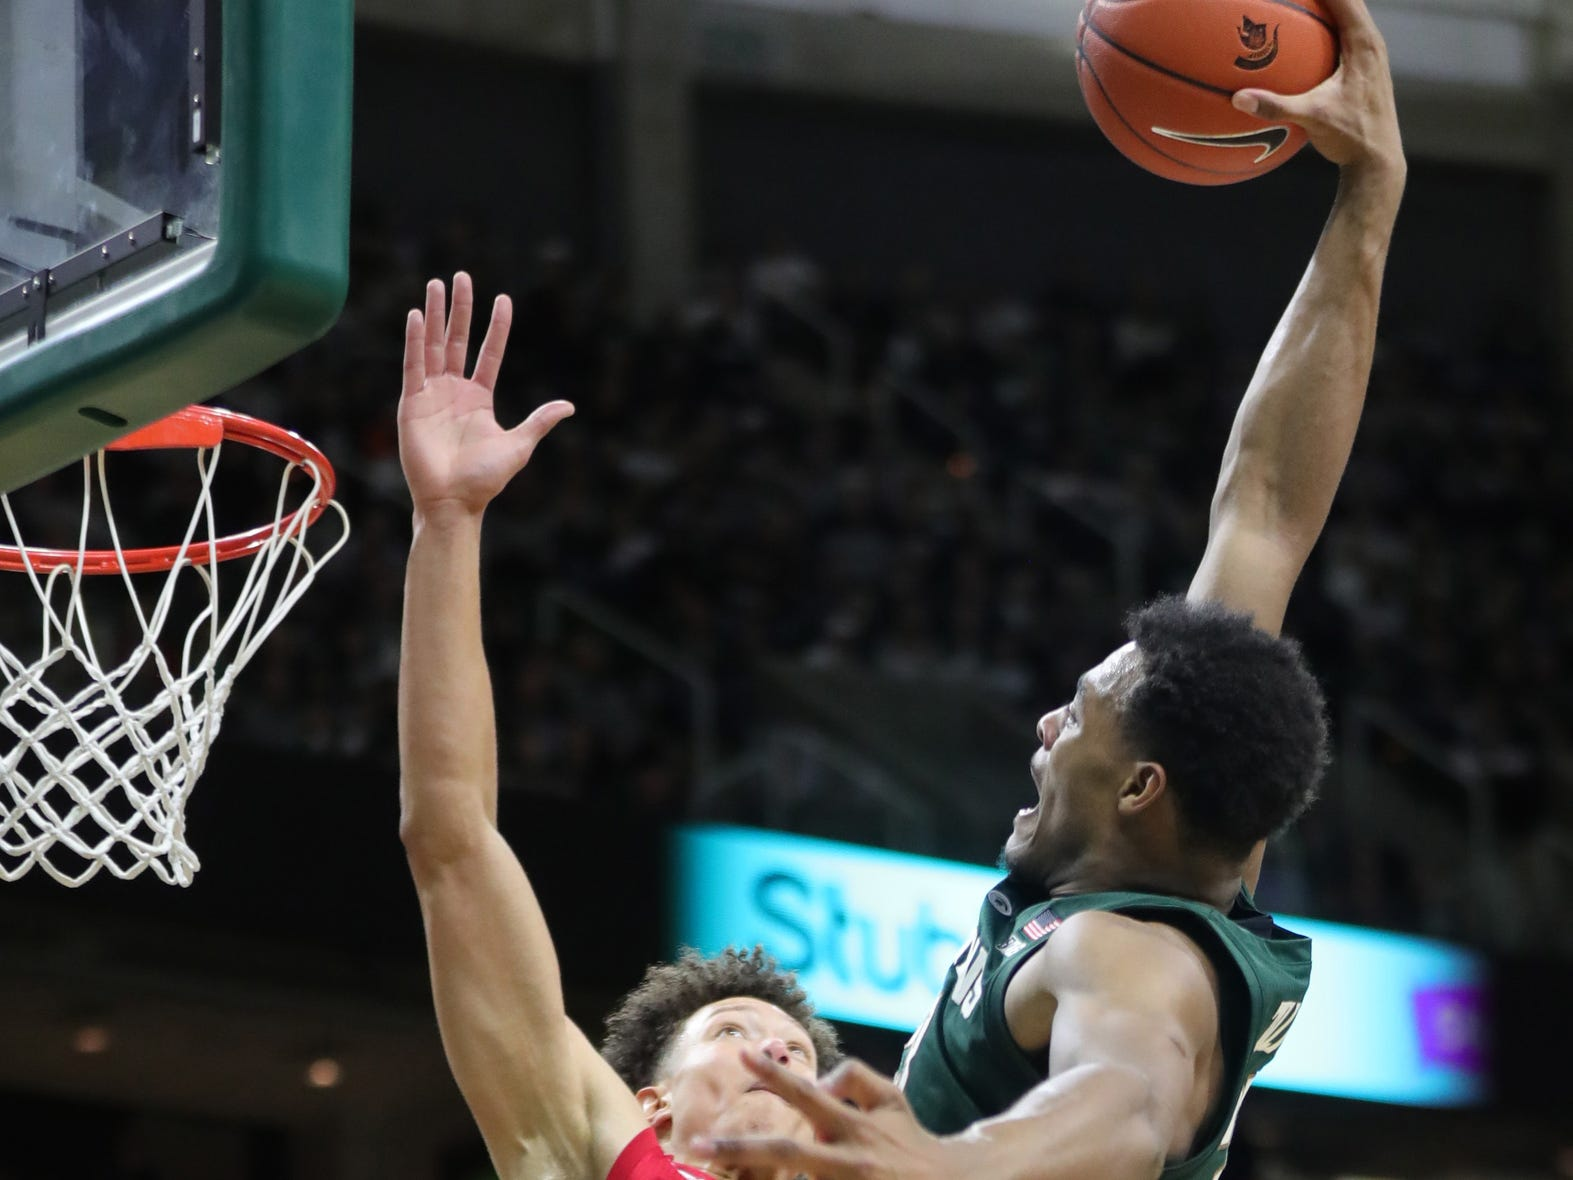 Michigan State forward Xavier Tillman shoots against Nebraska forward Isaiah Roby during first half action Tuesday, March 5, 2019 at the Breslin Center in East Lansing, Mich.